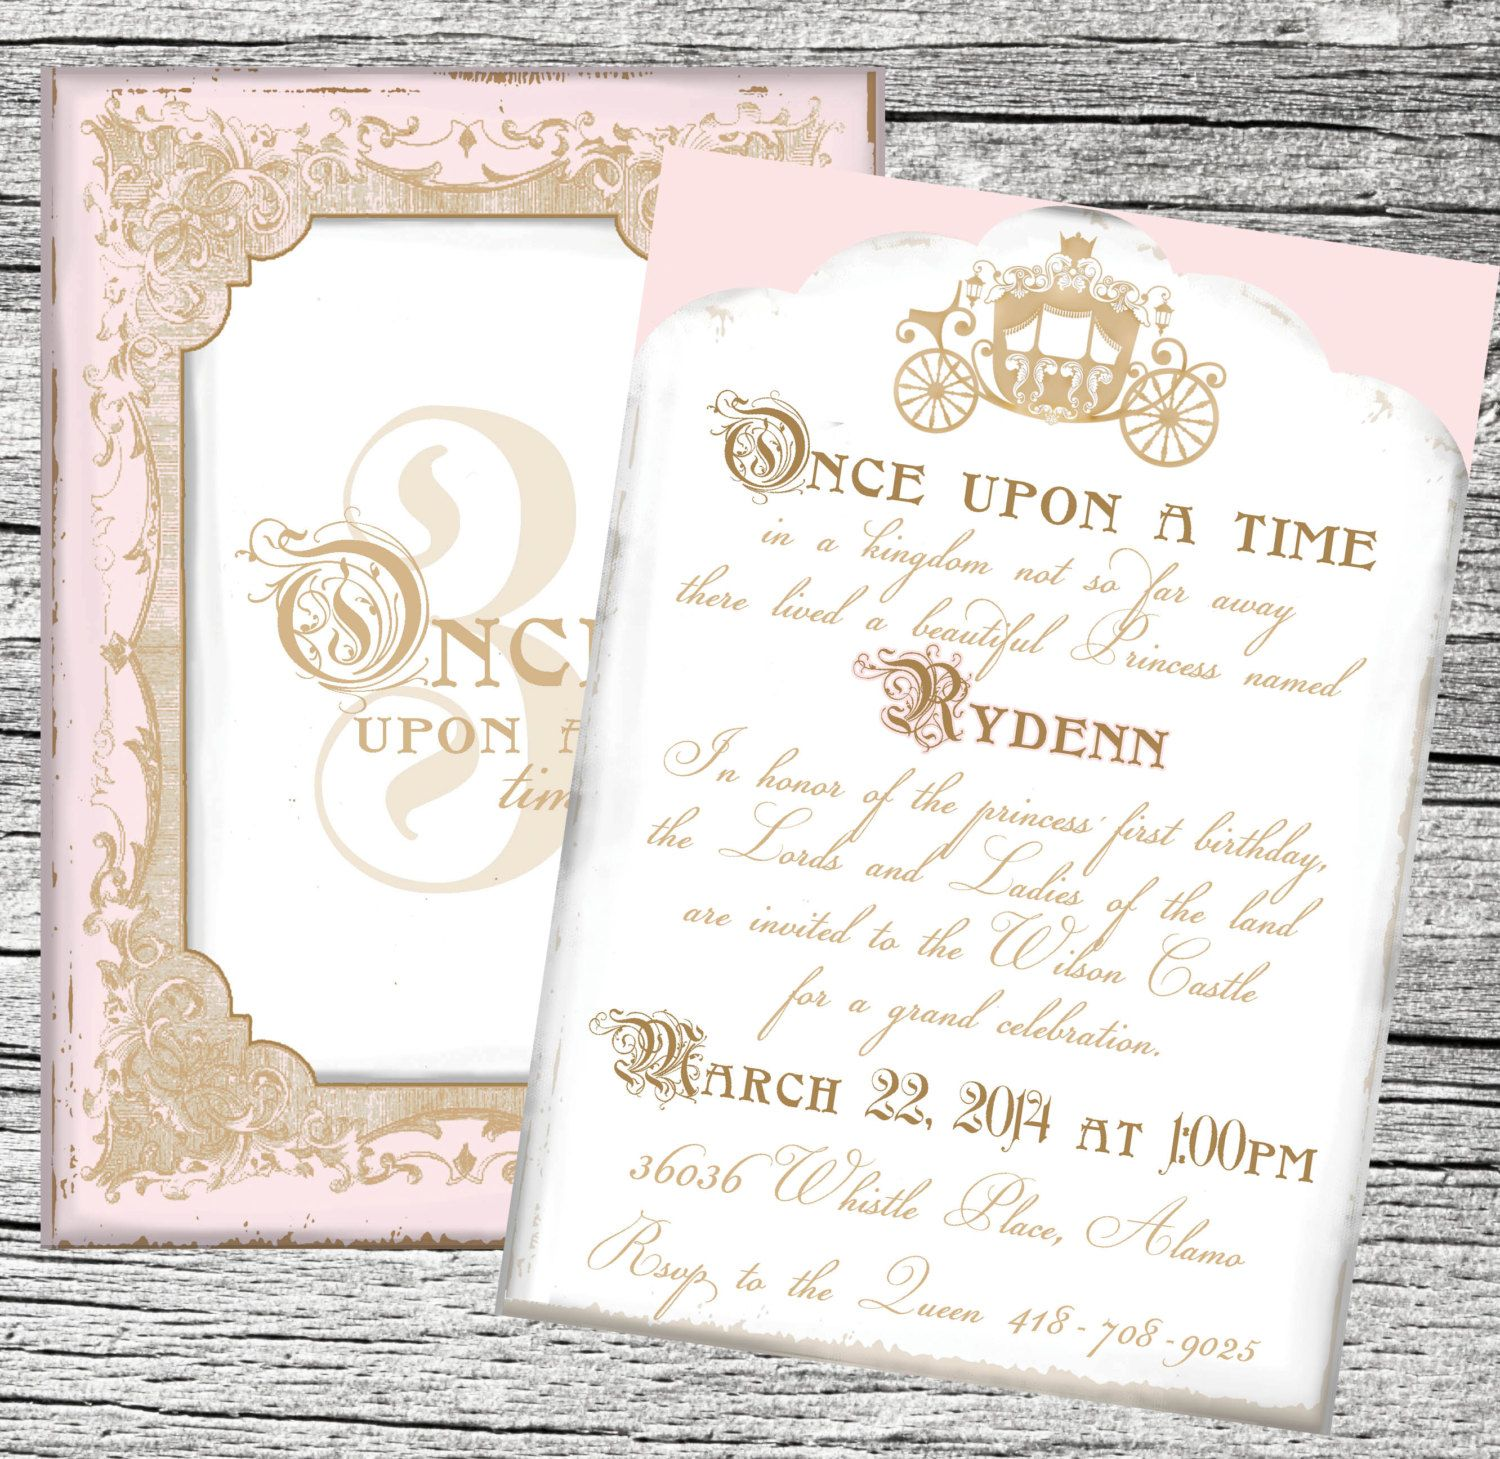 Once Upon a Time Princess Invitation Suite Princess invitations